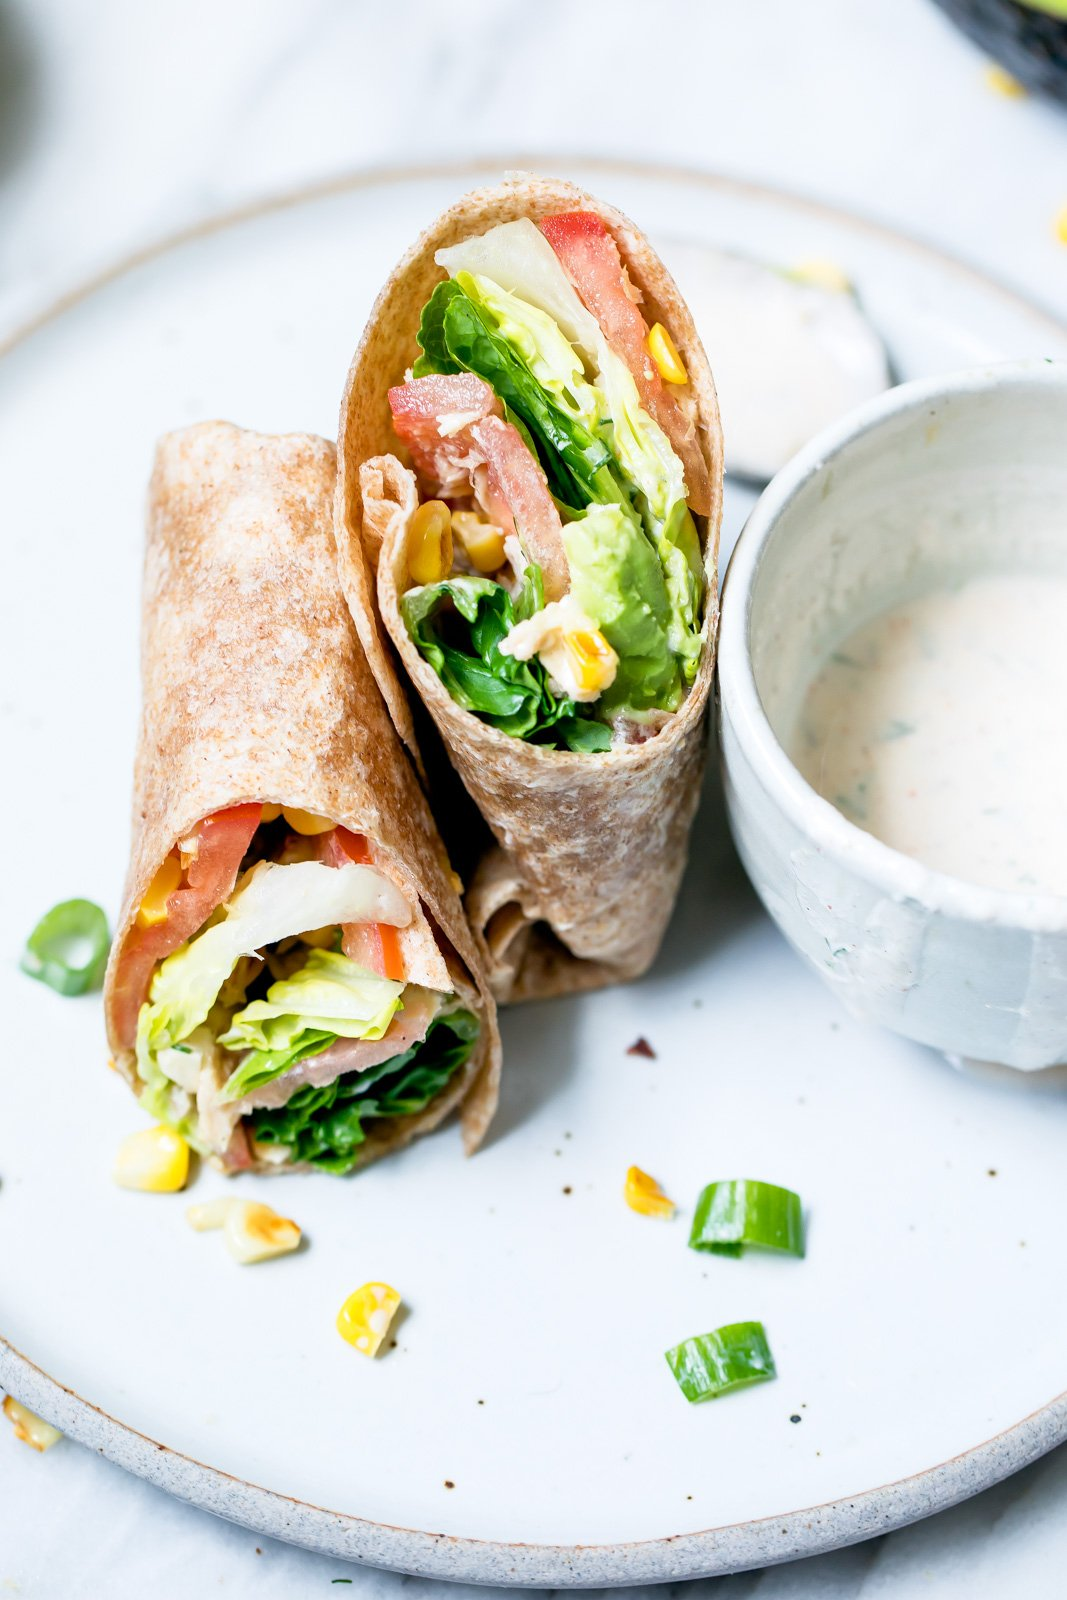 Easy, flavorful tuna wraps drizzled with light chipotle Greek yogurt ranch dressing. They're the perfect summertime lunch and packed with delicious farmer's market veggies.